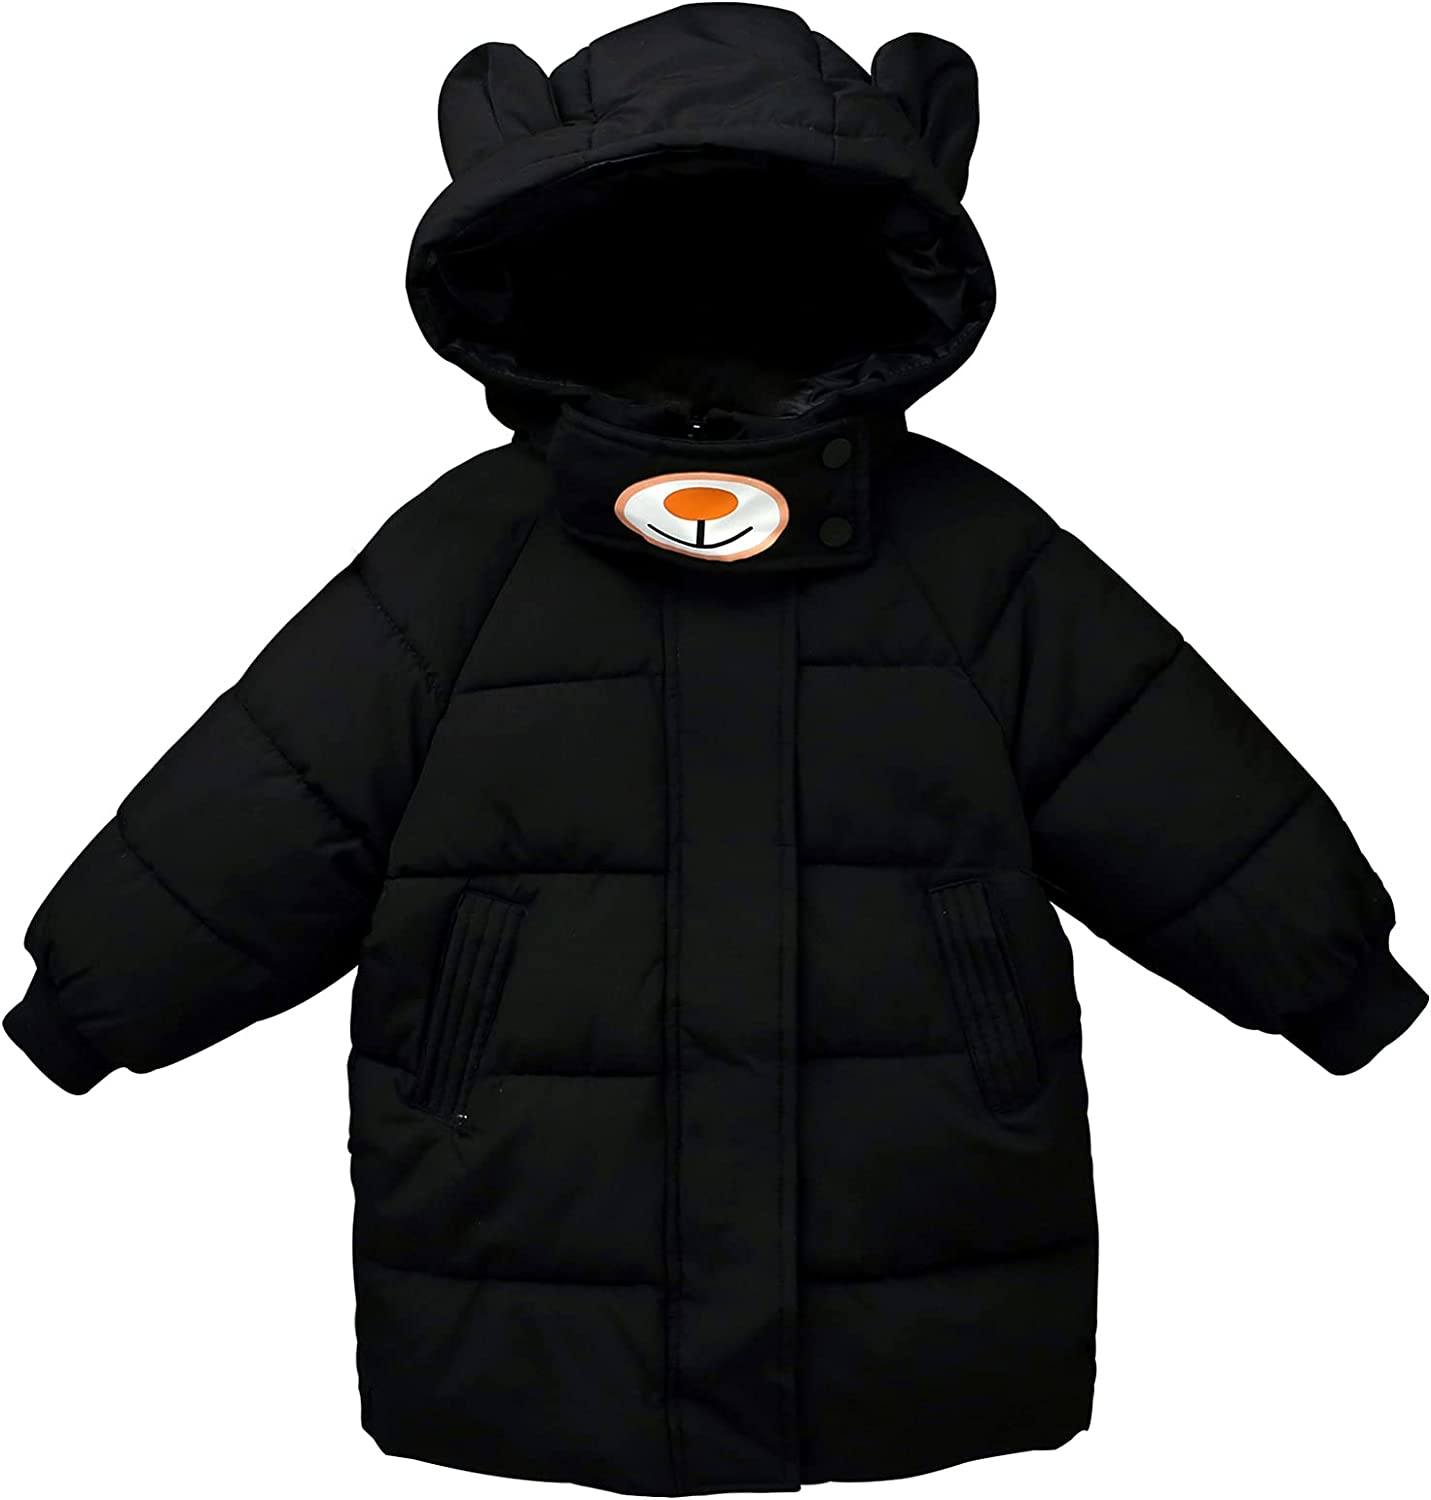 Panegy Children Down Jacket Winter Hooded Down Coat with Pocket Zip Up Outwear